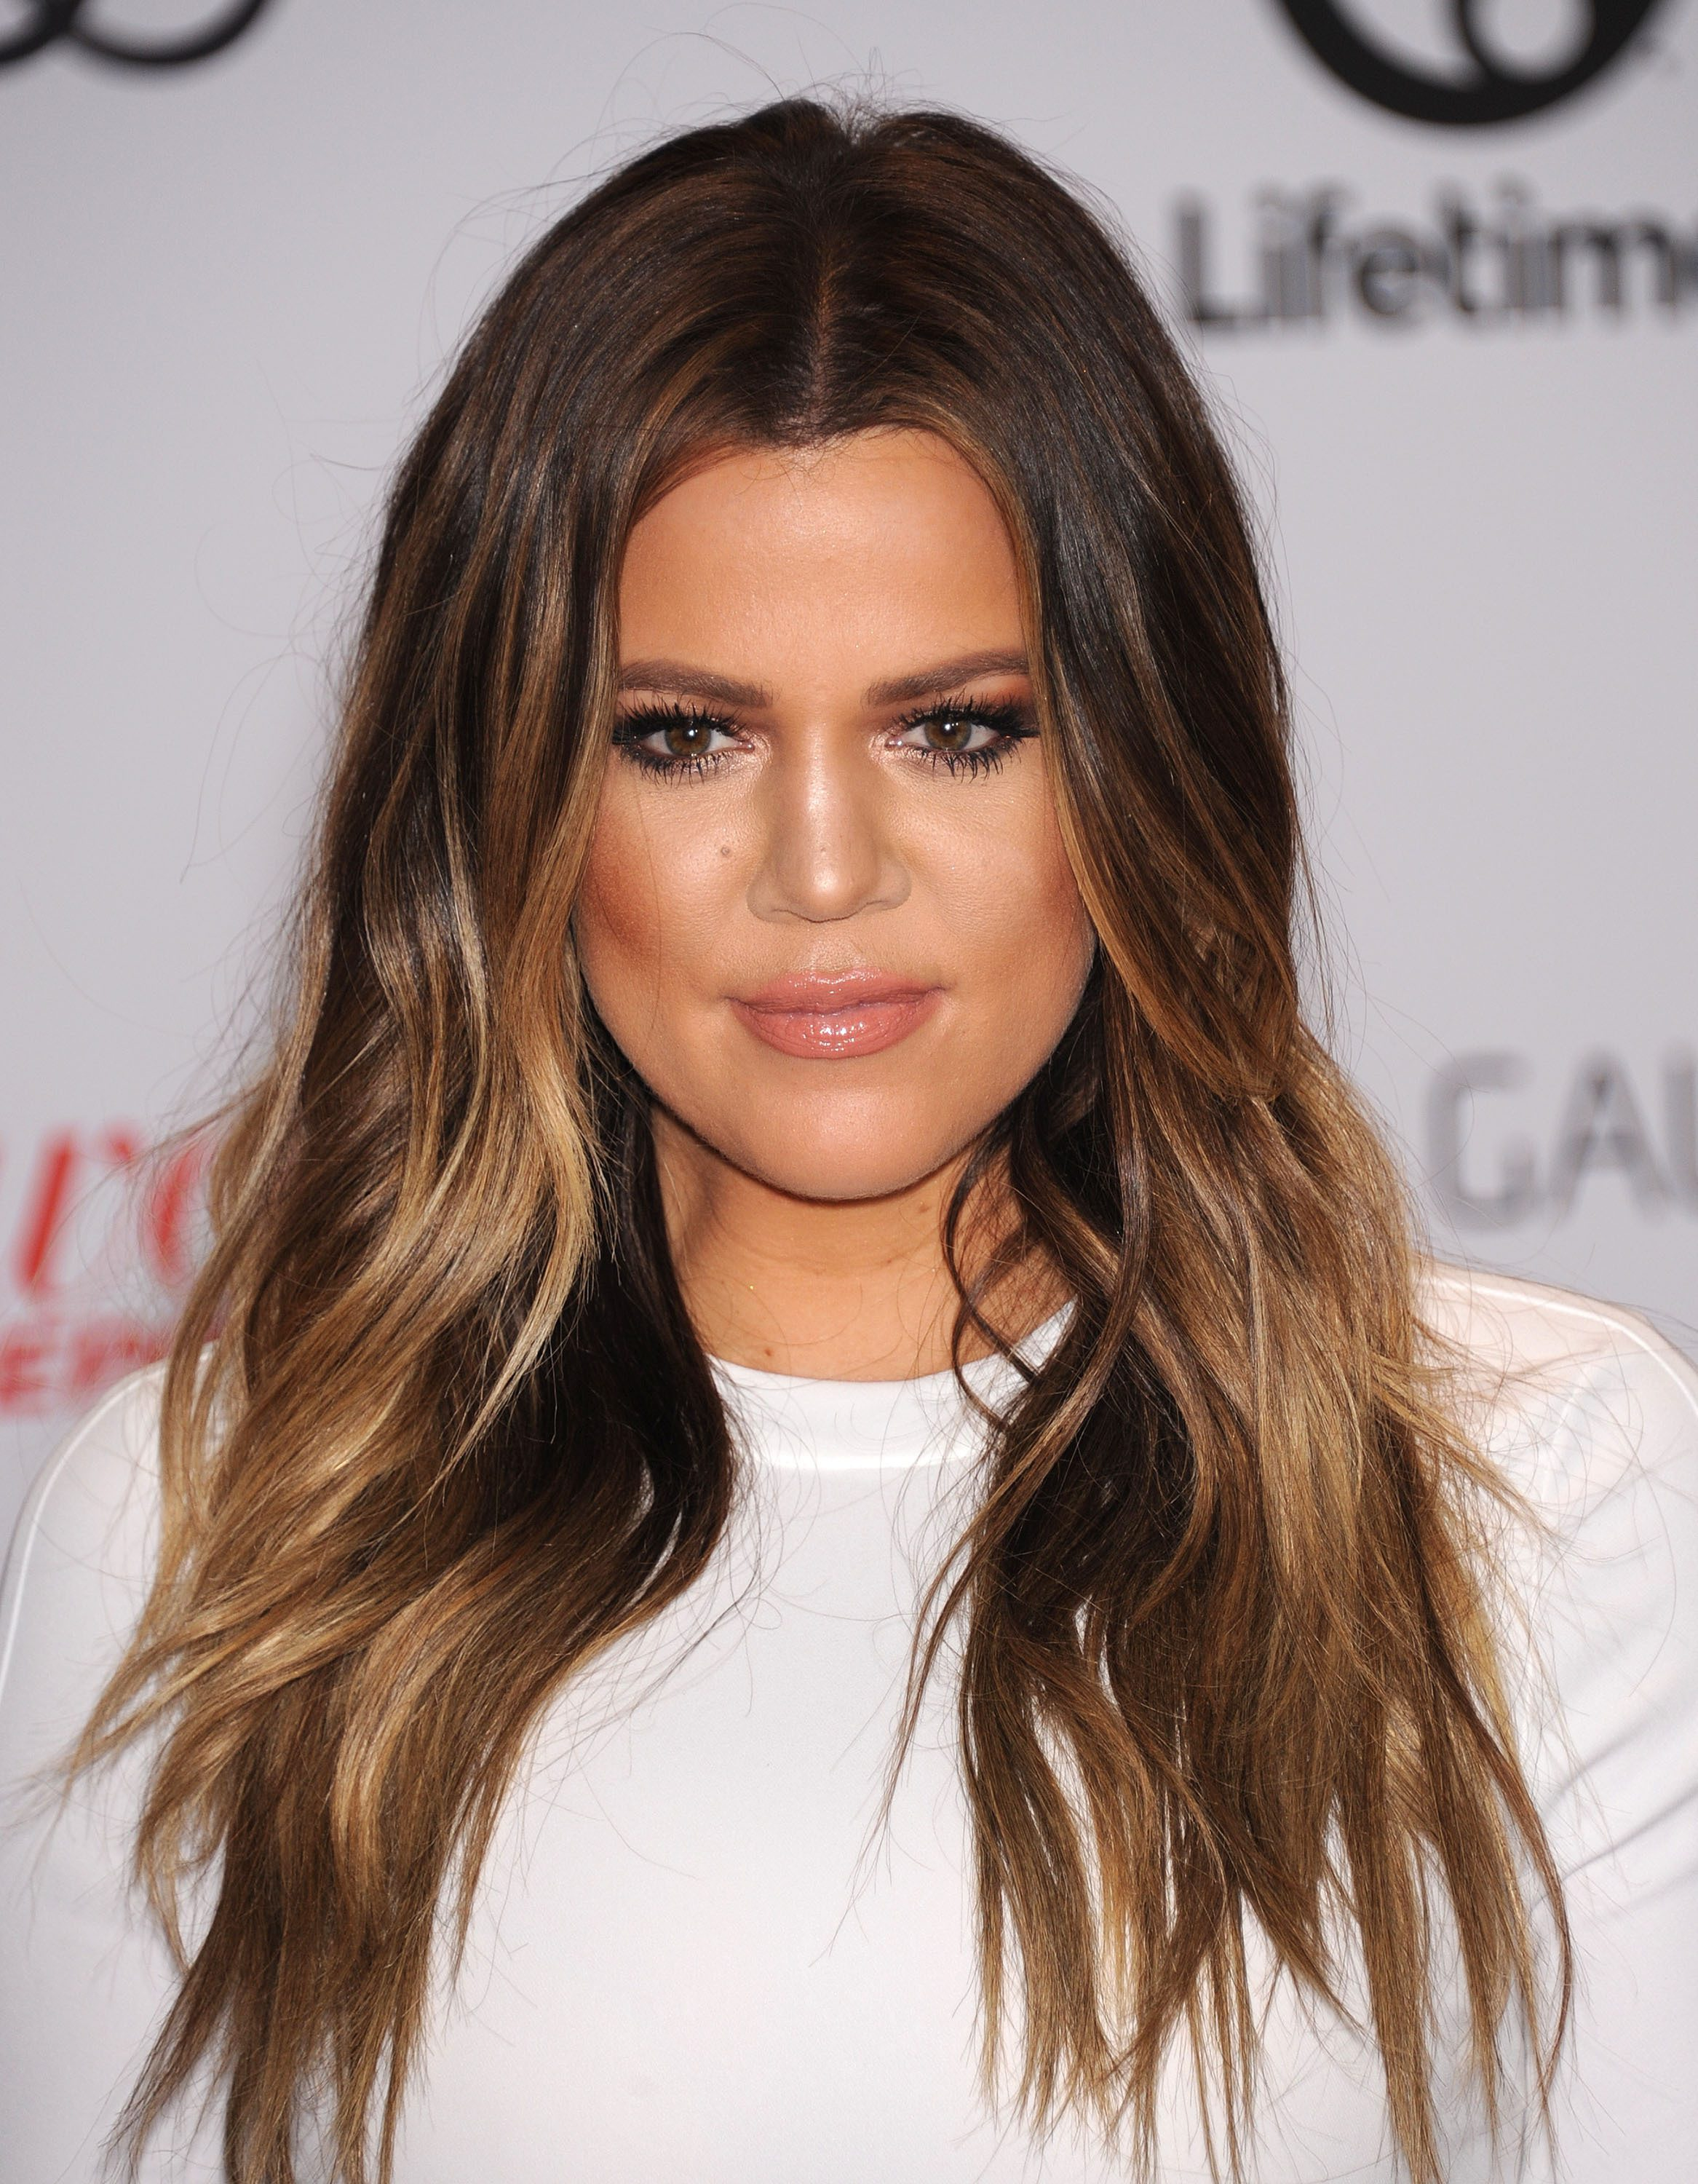 Khloe Kardashian's Chocolate Brown with Face-Framing Highlights